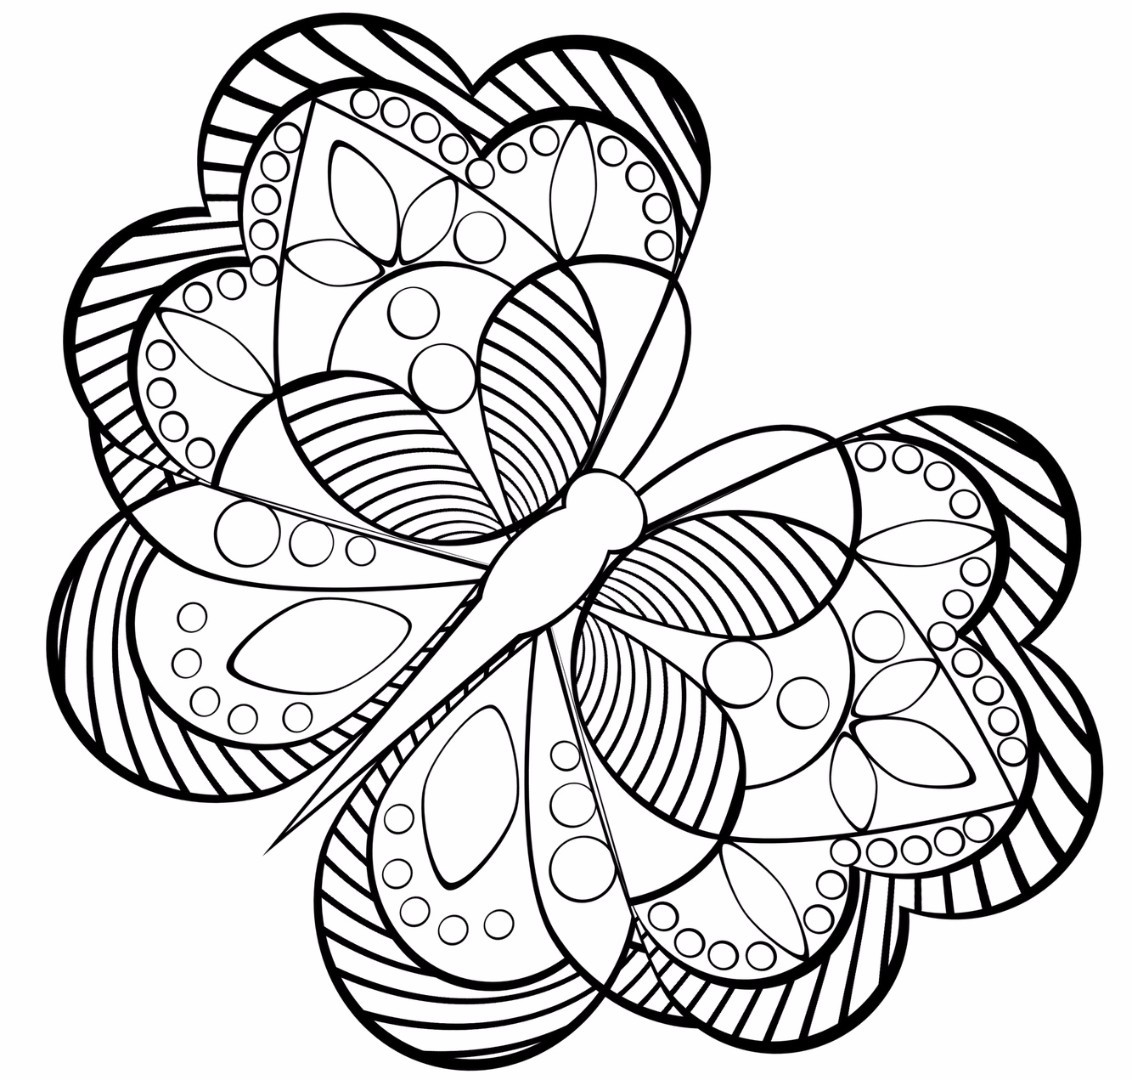 Best ideas about Stress Free Coloring Sheets For Kids . Save or Pin Coloring pages anti stress for children Now.